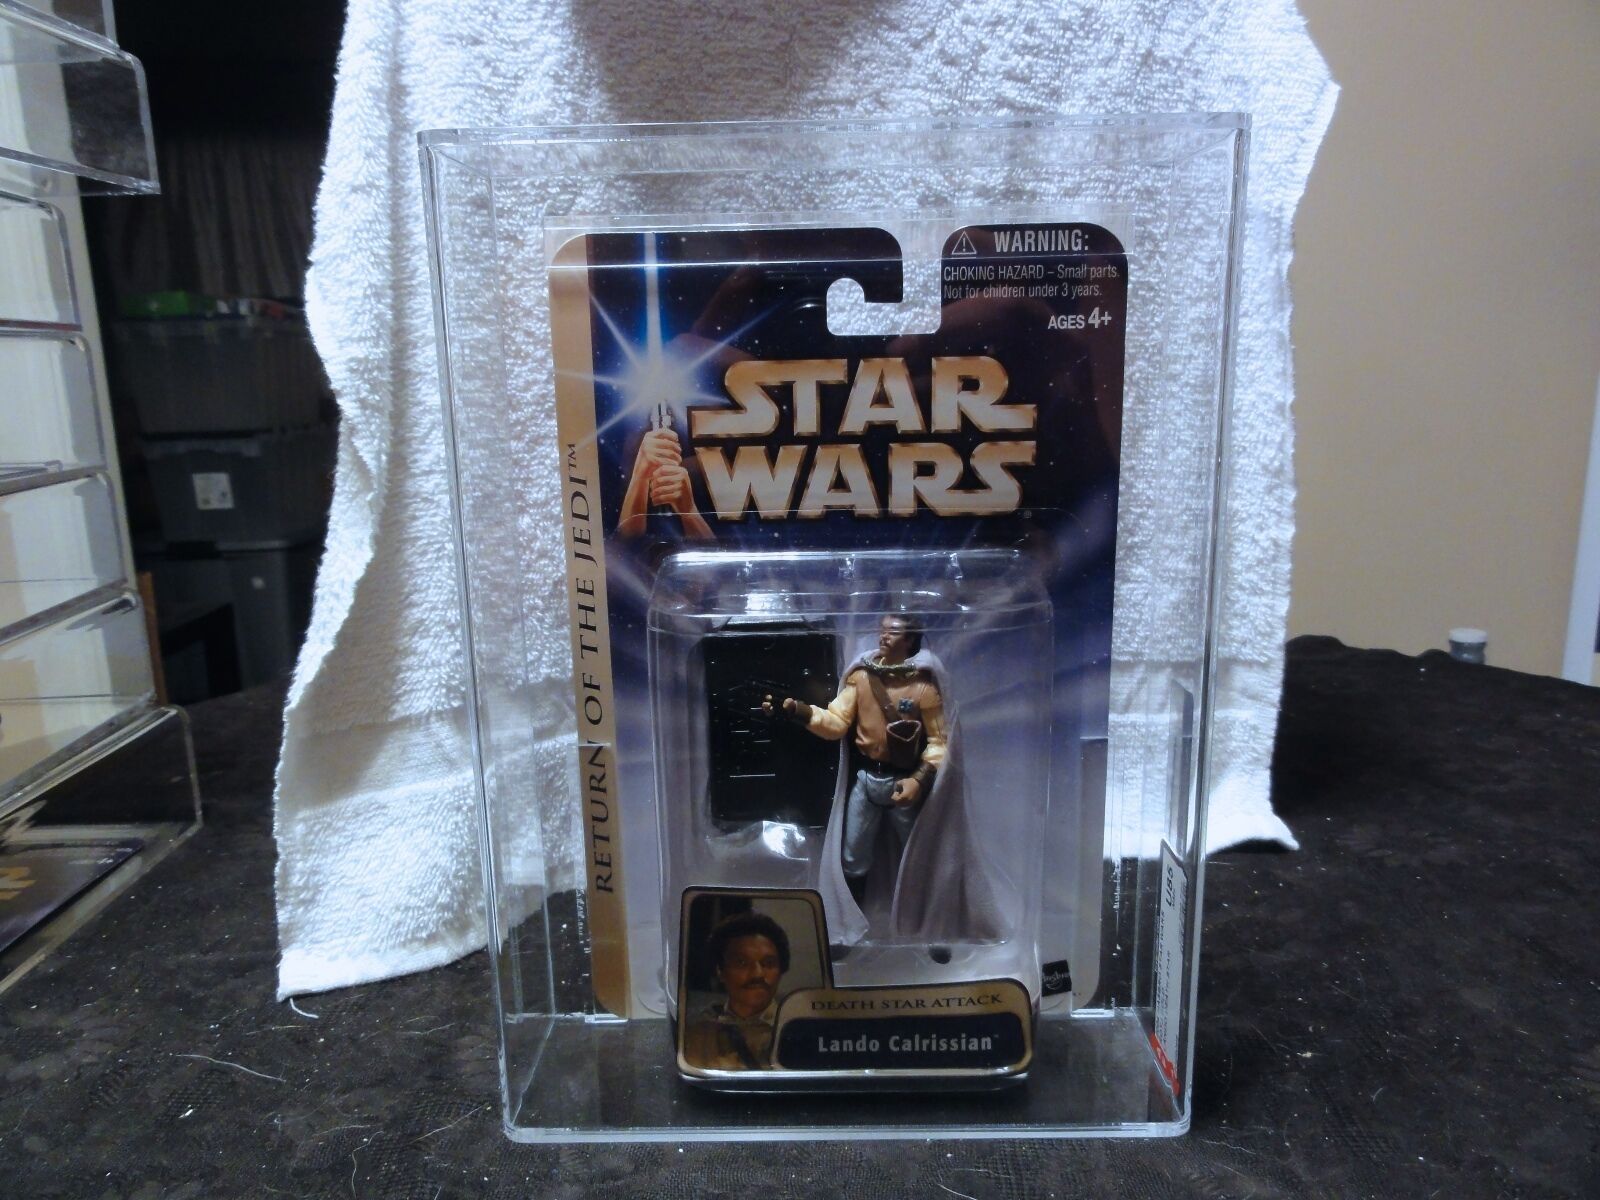 Star Wars 2004 Star Wars ROTJ Gold Lando Death Star AFA Sealed MIB BOX